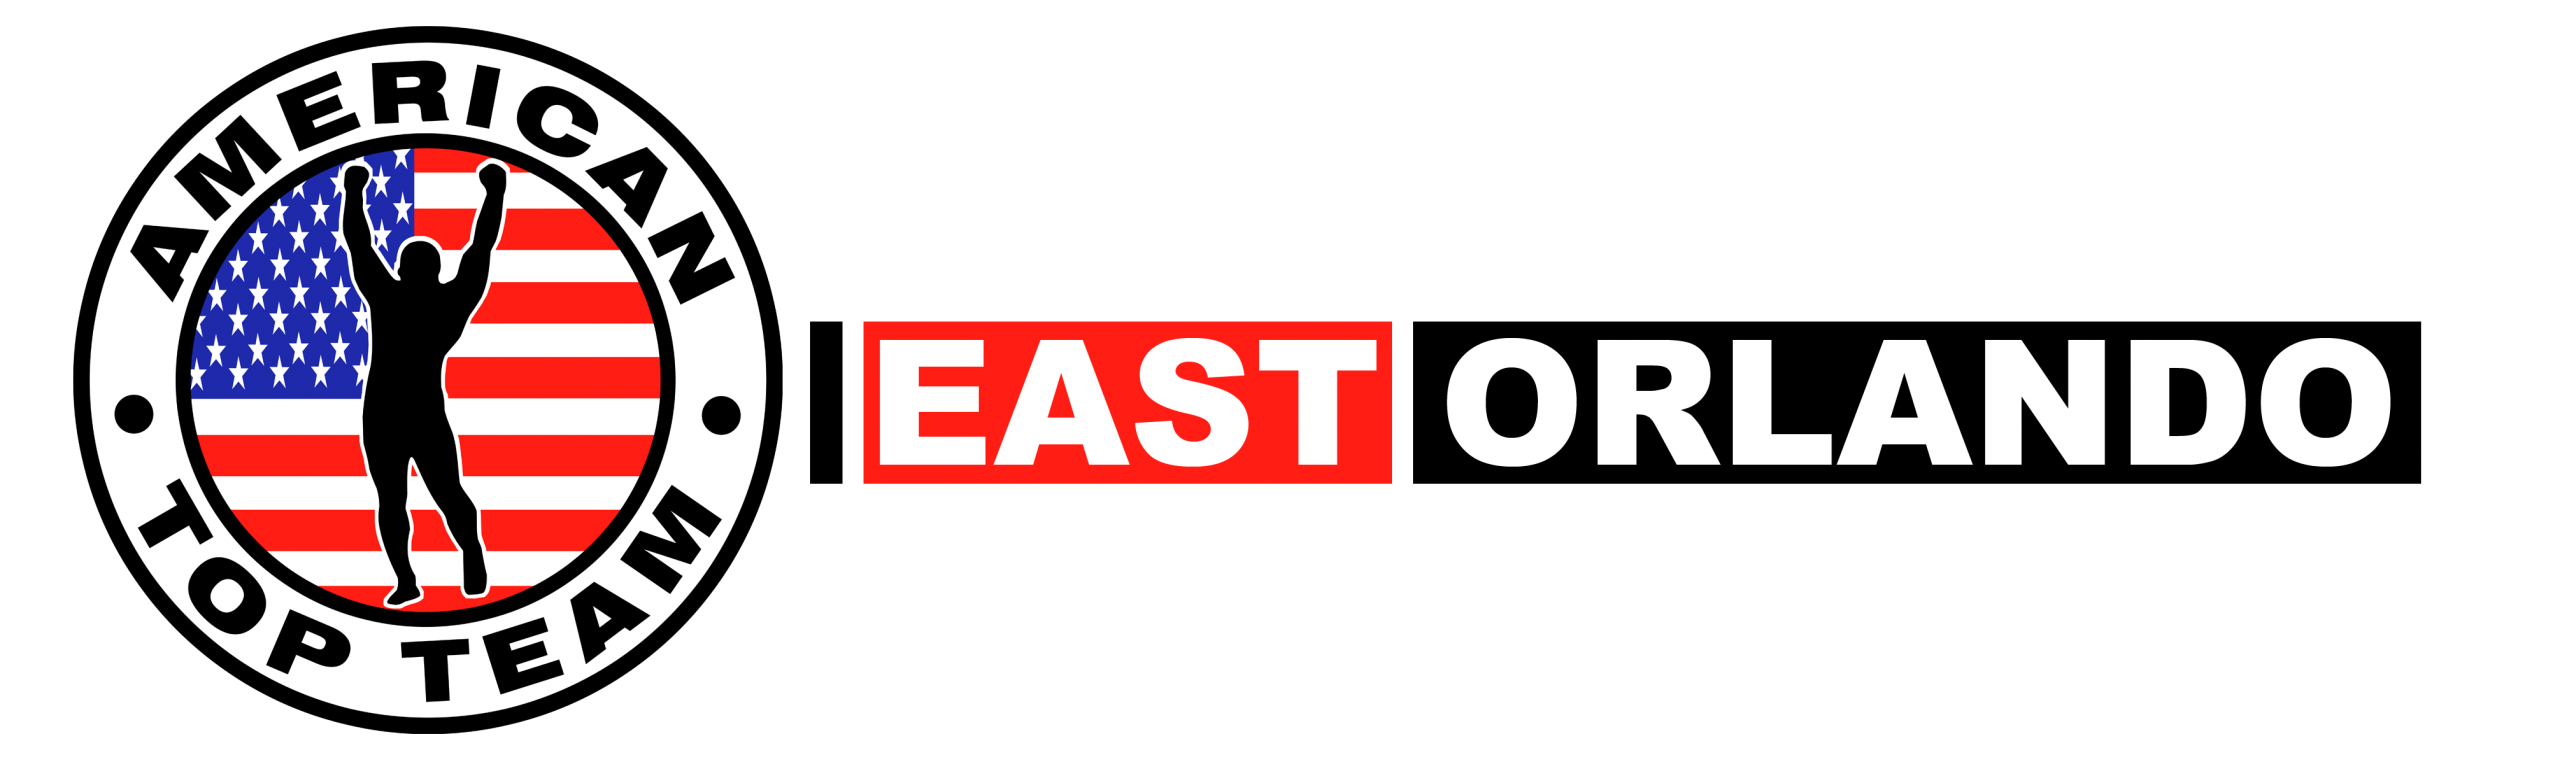 """American Top Team East Orlando selected as the """"Best of Orlando"""""""